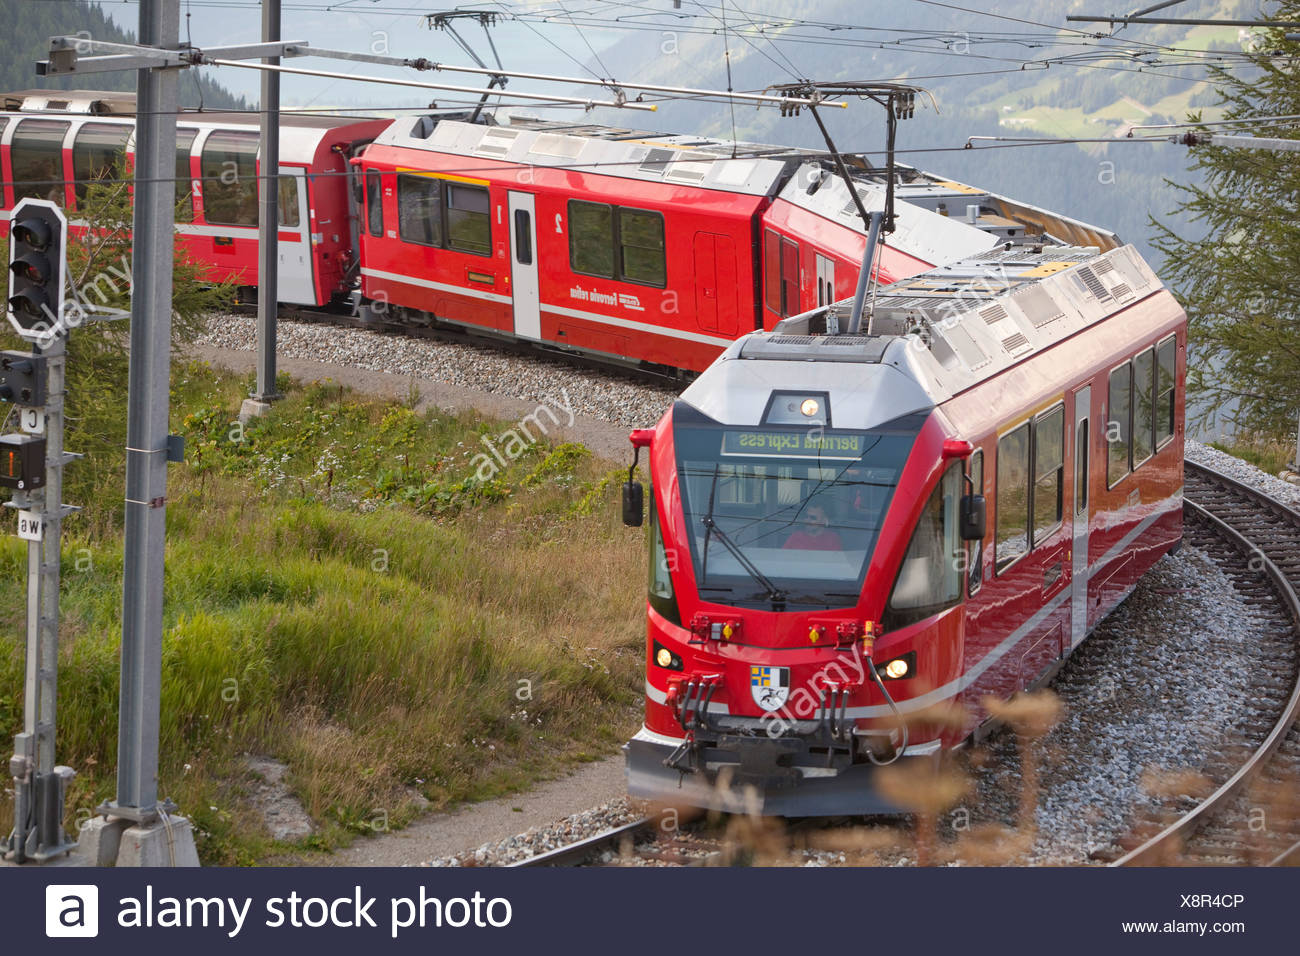 Road, Railway, train, railroad, canton, Graubünden, Grisons, Switzerland, Europe, Rhaetian Railway, Alp Grüm, Berninastrecke - Stock Image